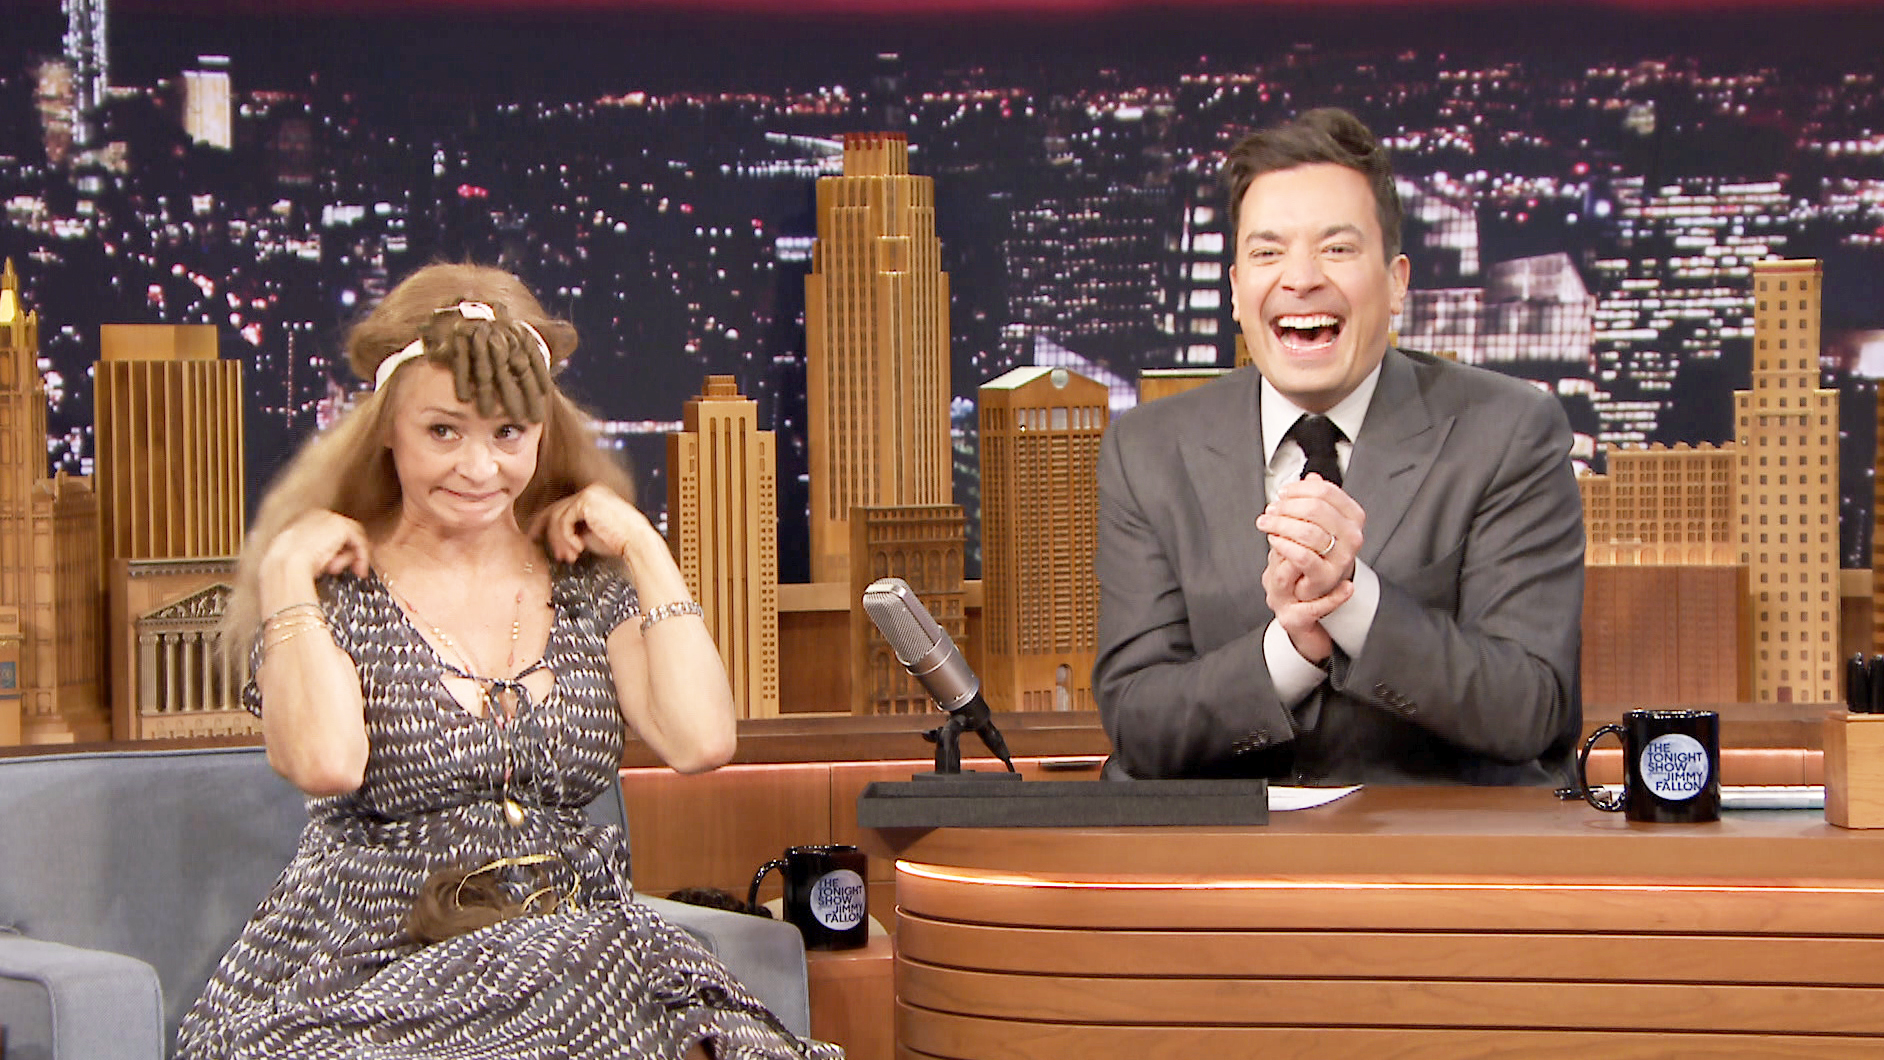 Amy Sedaris Is Obsessed with Beard Wigs - The Tonight Show